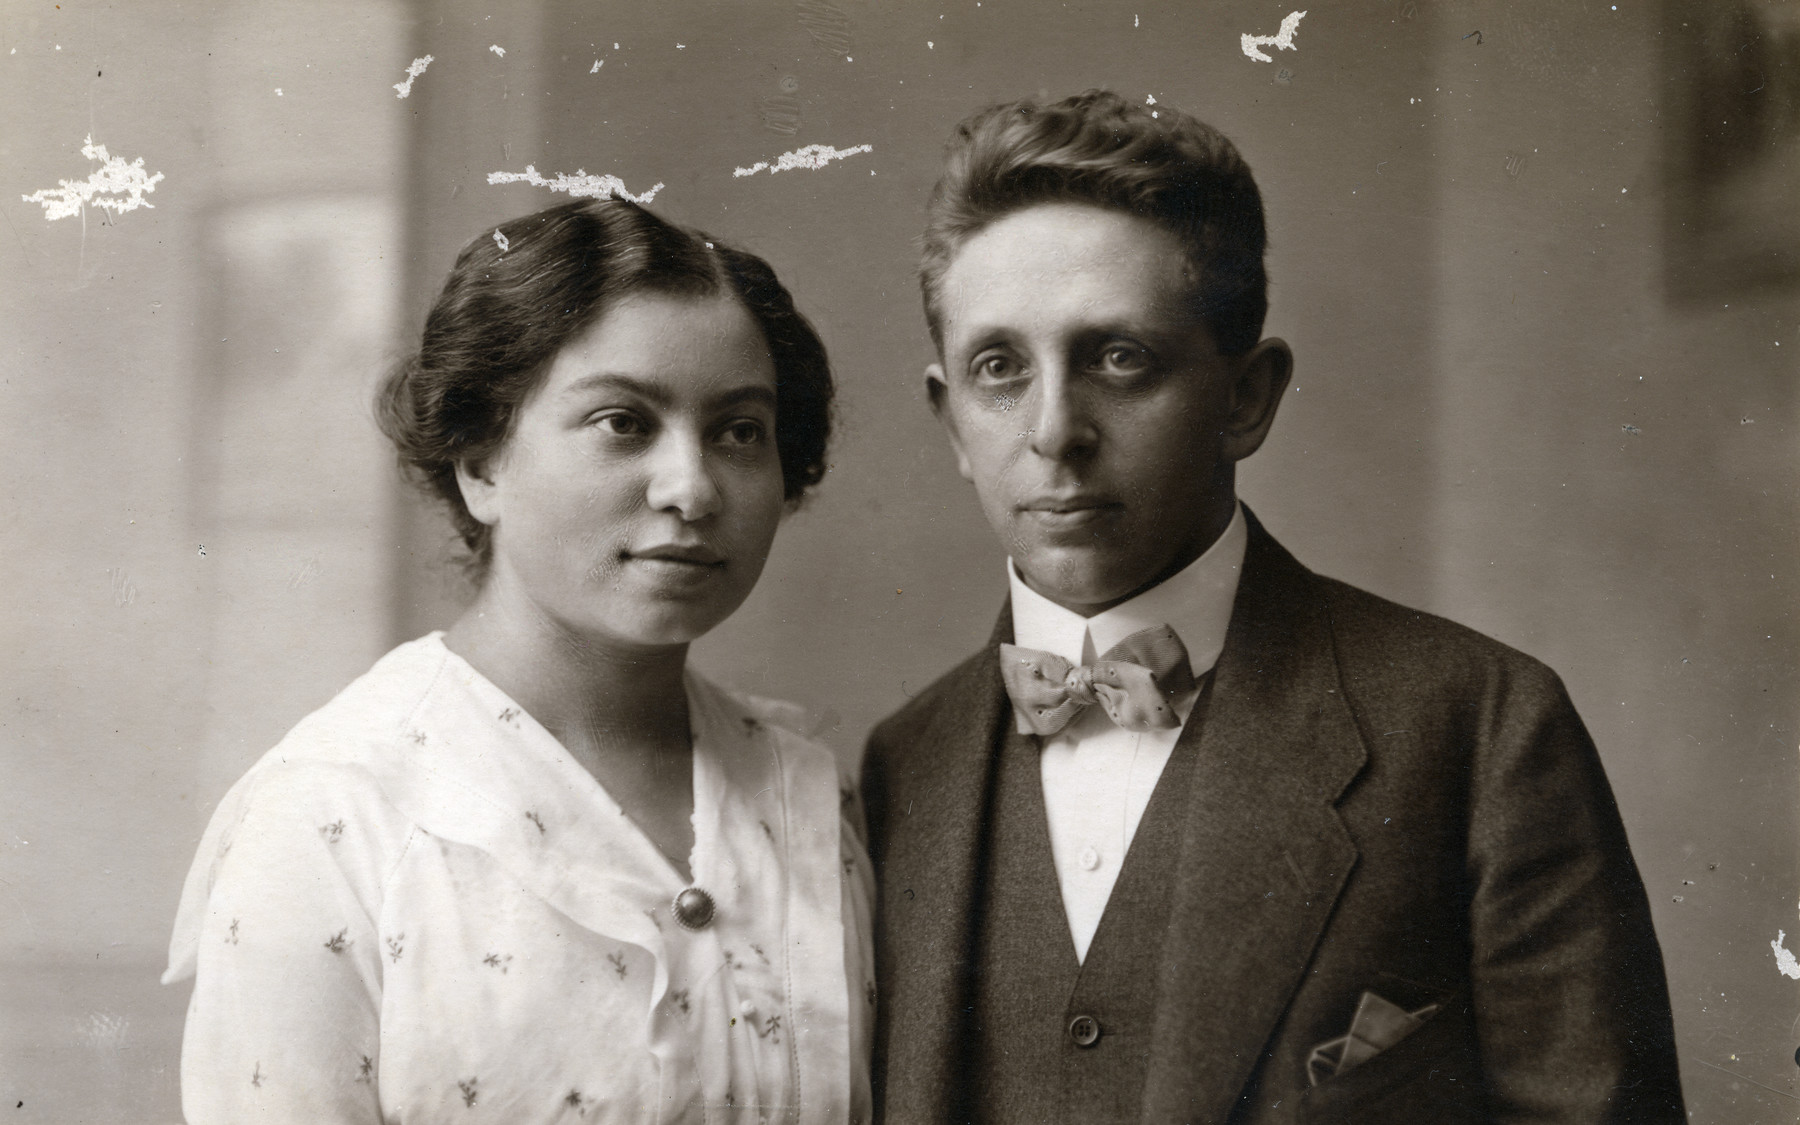 Studio portrait of an Italian Jewish couple; relatives of the Kohn family who perished in the Shoah